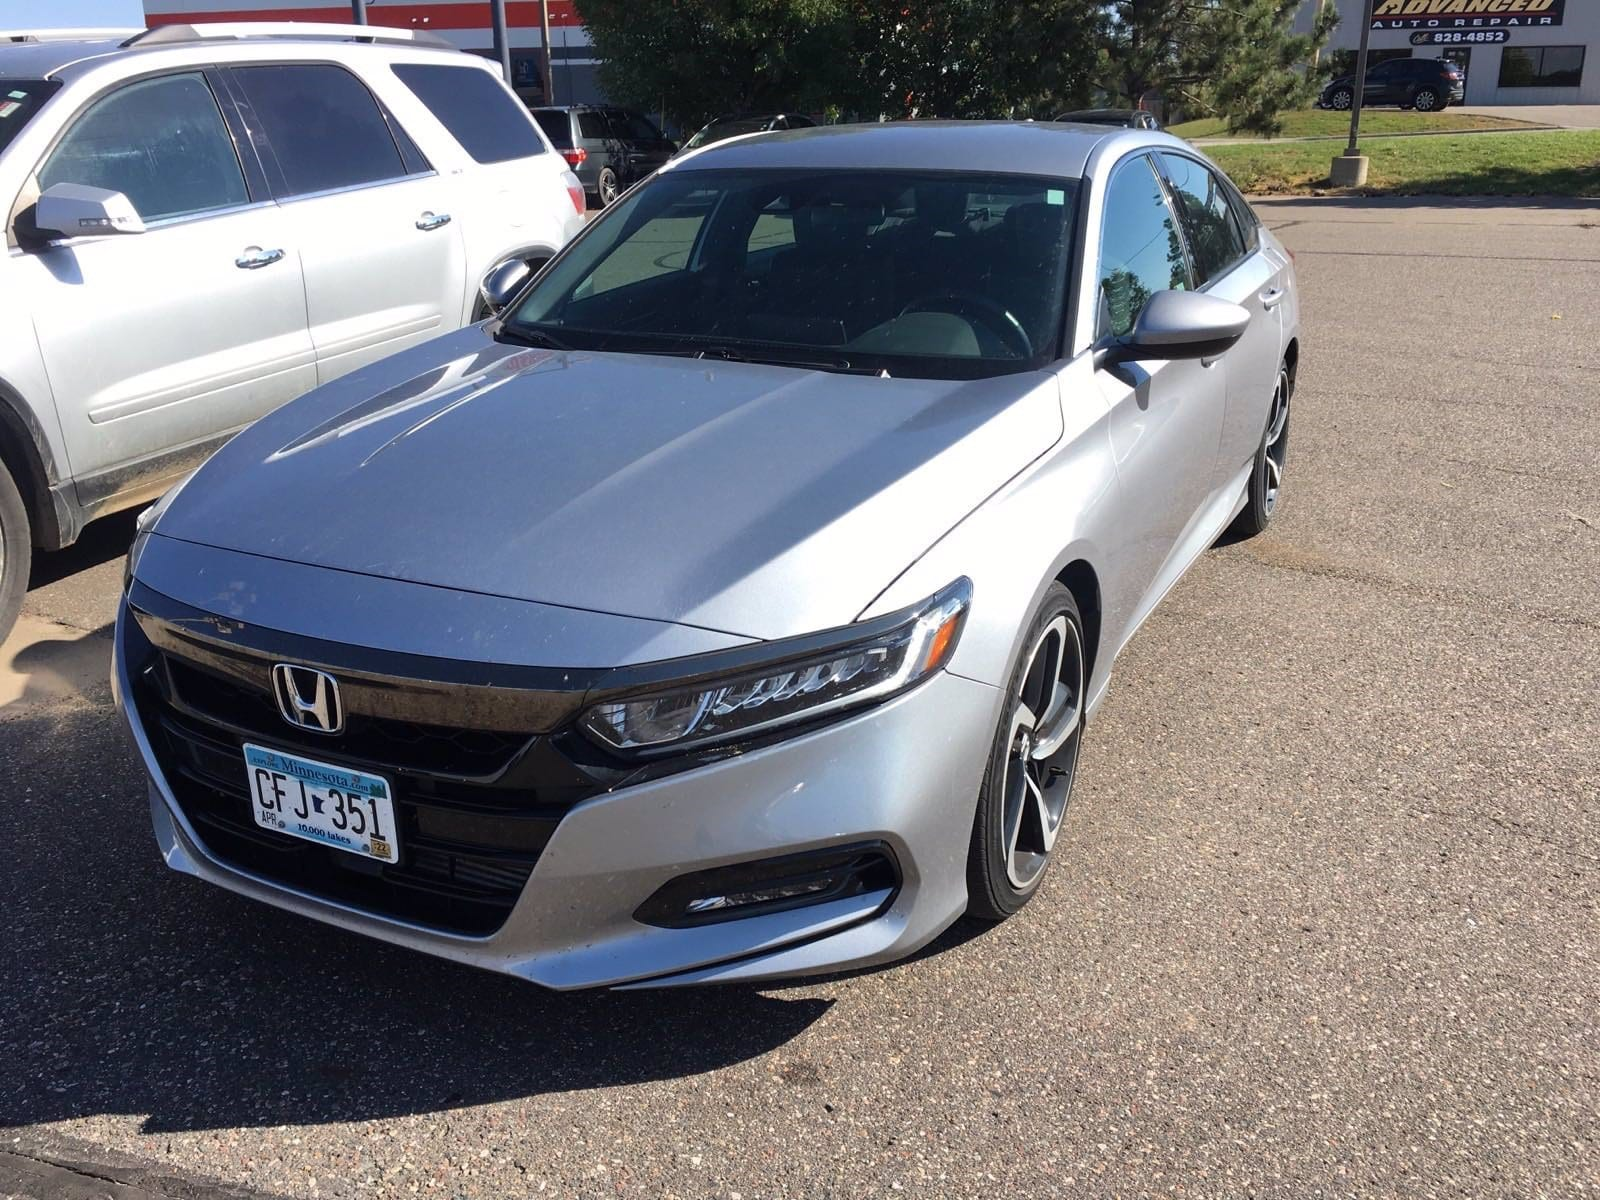 Used 2018 Honda Accord Sport with VIN 1HGCV1F31JA203286 for sale in Baxter, Minnesota